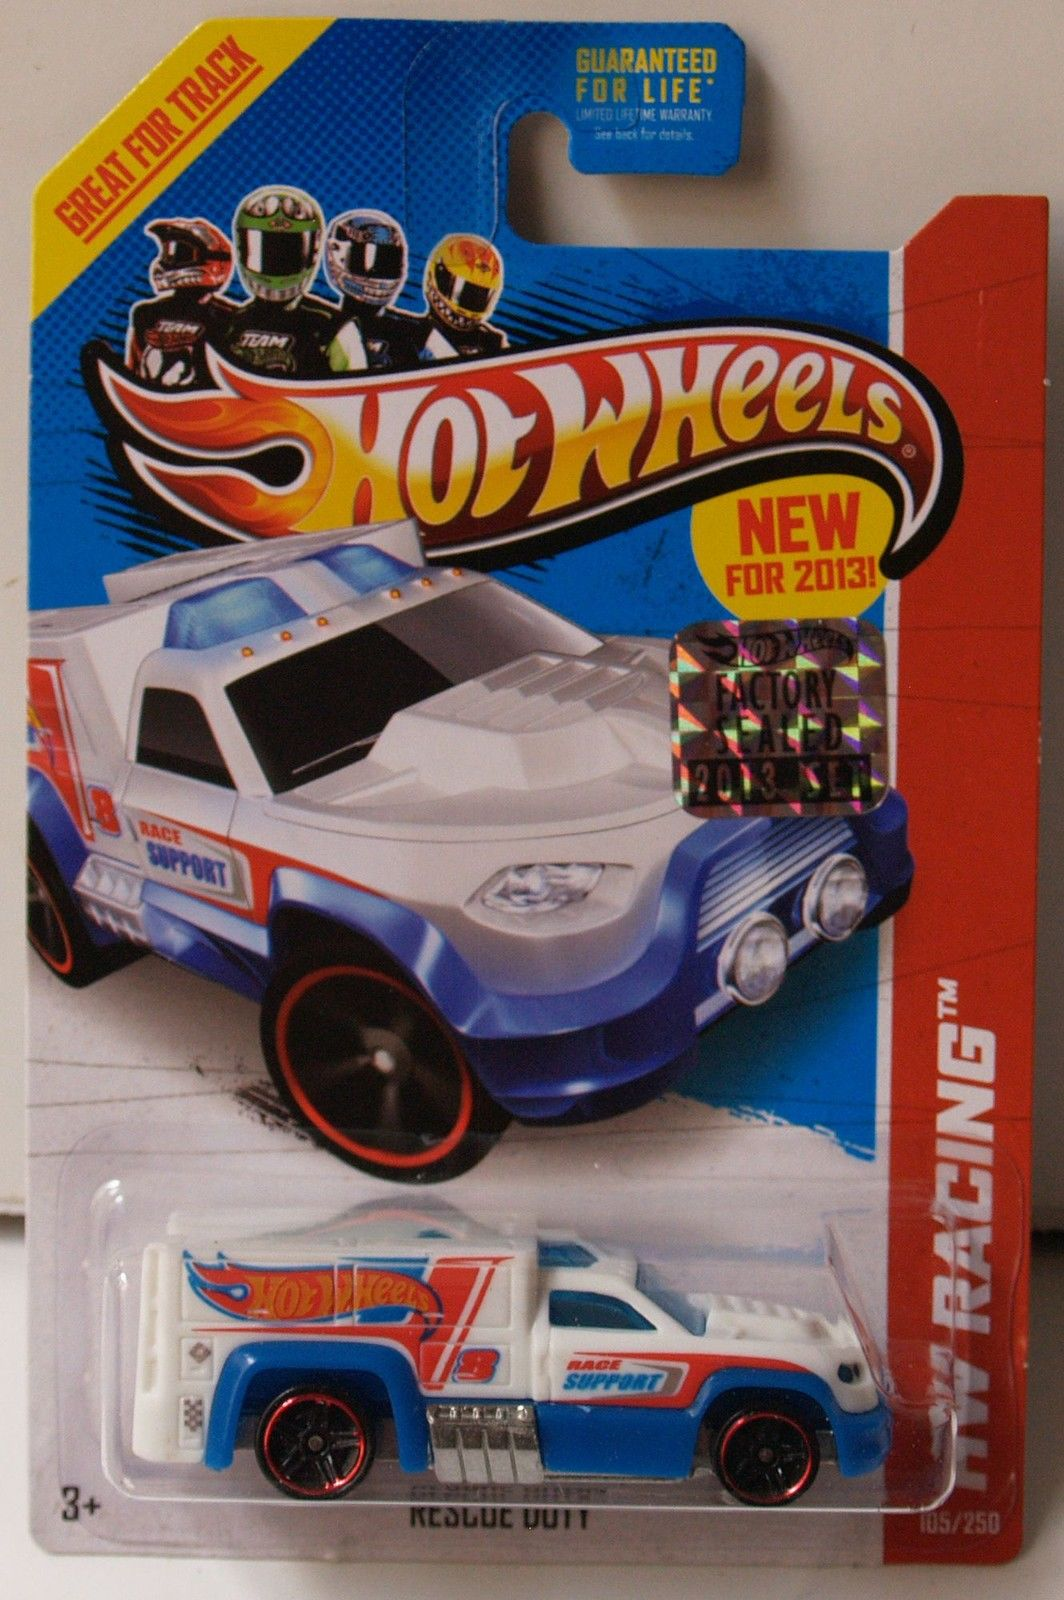 HOT WHEELS 2013 HW RACING HW RACE TEAM RESCUE DUTY FACTORY SEALED